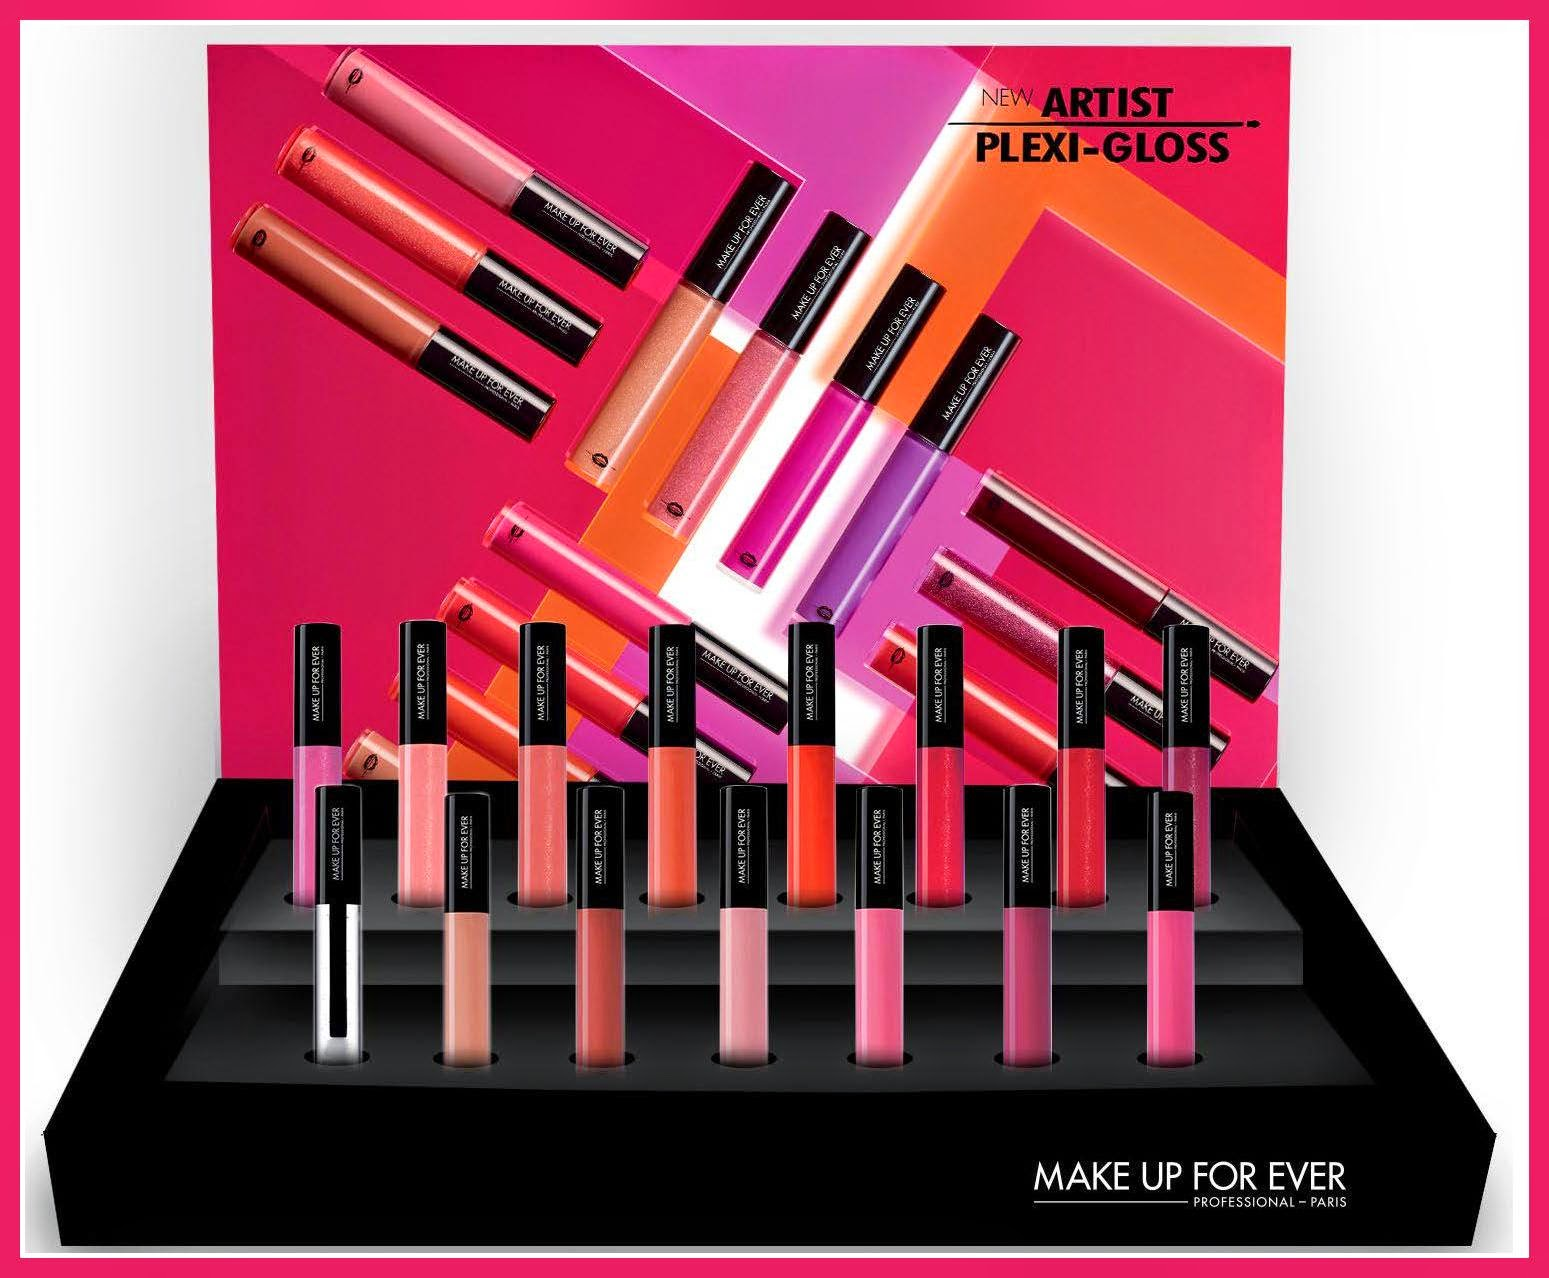 MAKE UP FOR EVER - Artist Plexi-Gloss - press - mufe - gloss - new entry - dany sanz - lucida labbra